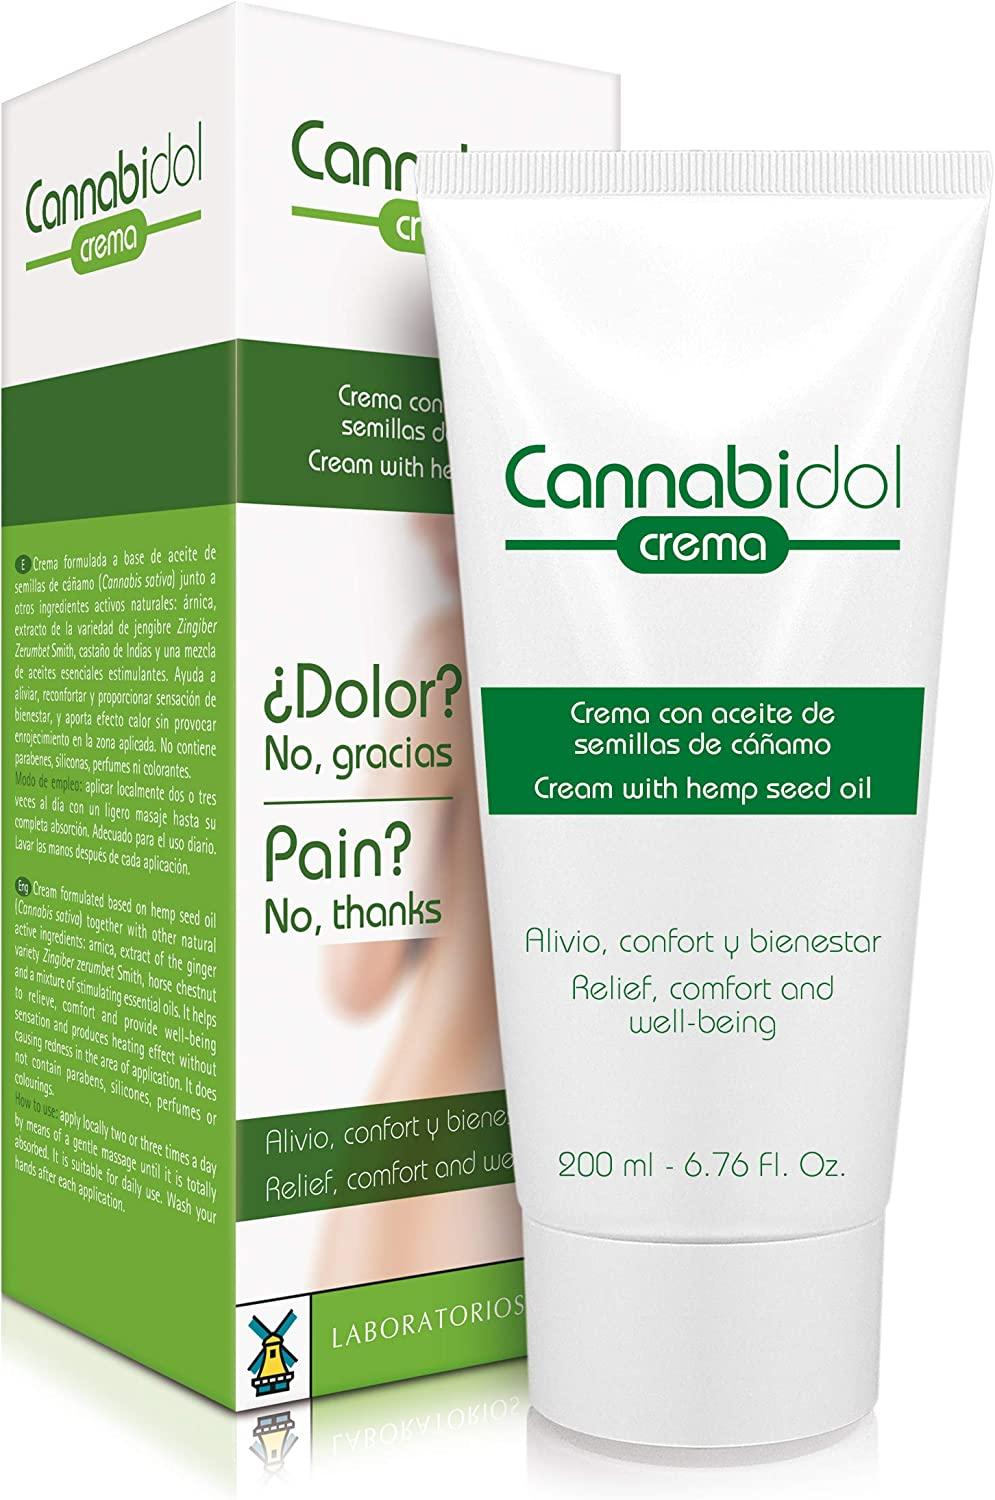 Tegor Cannabidol, 200 ml, Verde